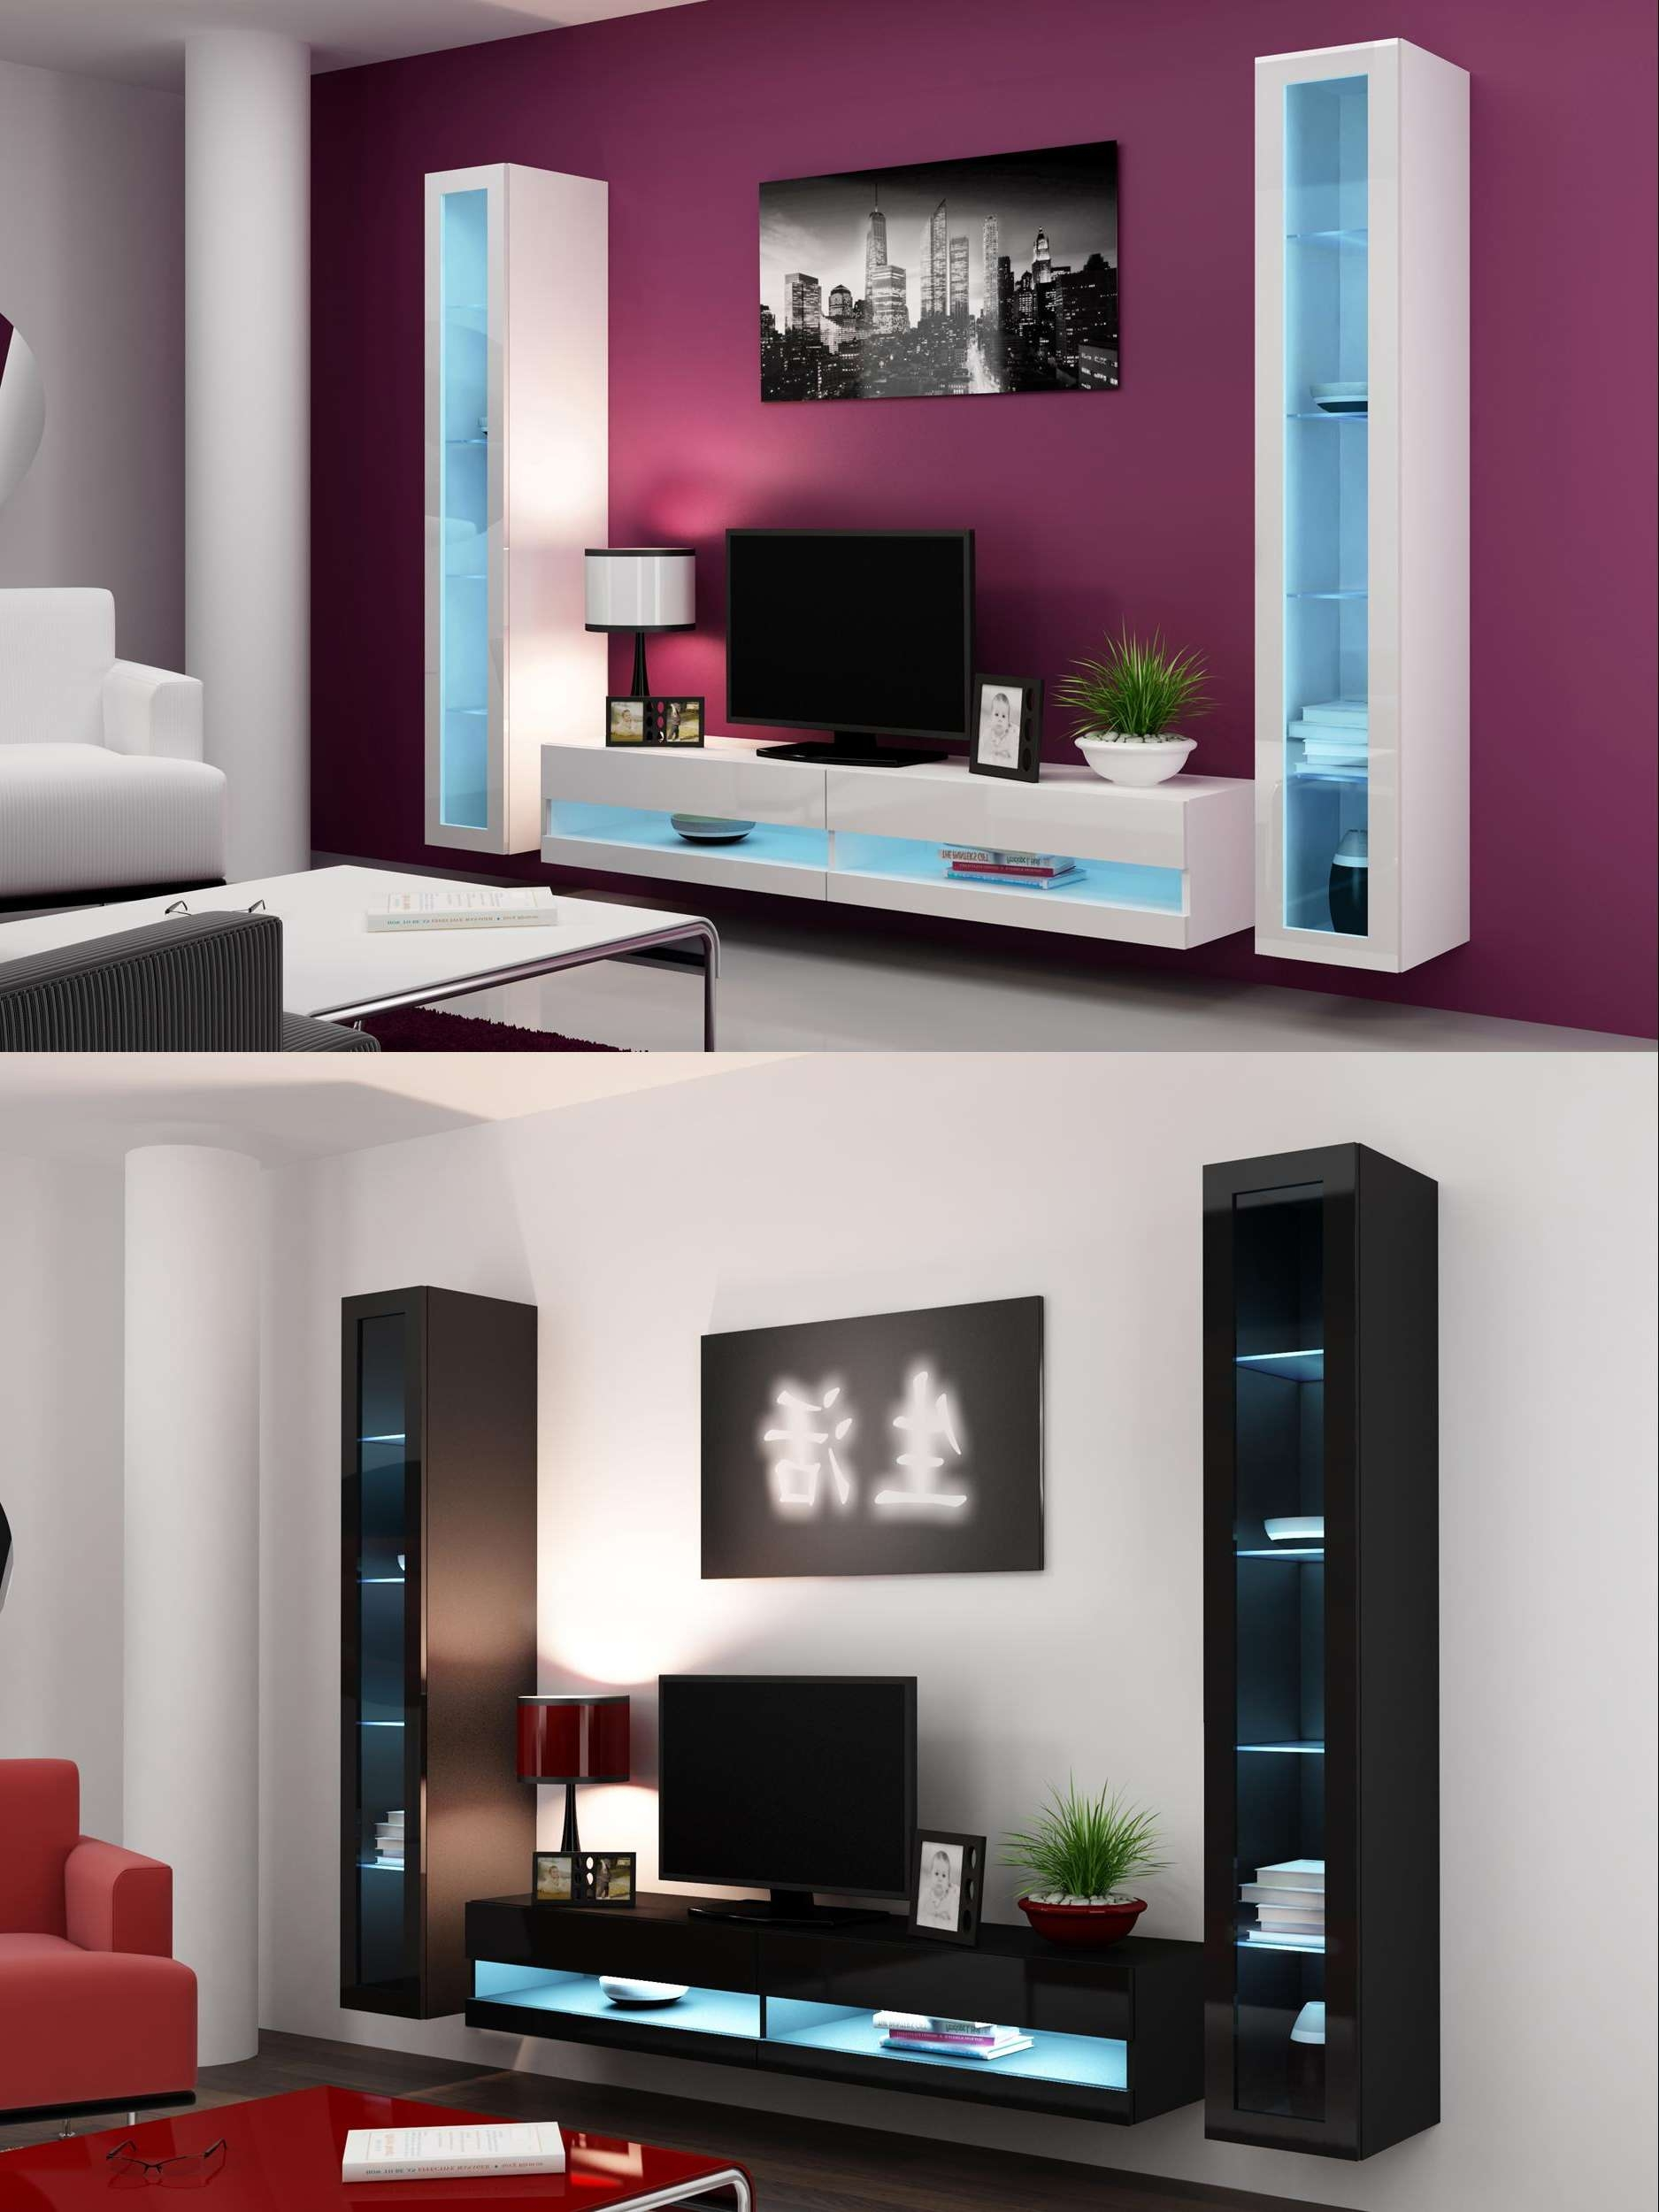 High Gloss Living Room Set With Led Lights, Tv Stand, Wall Mounted Pertaining To Wall Display Units And Tv Cabinets (View 10 of 20)